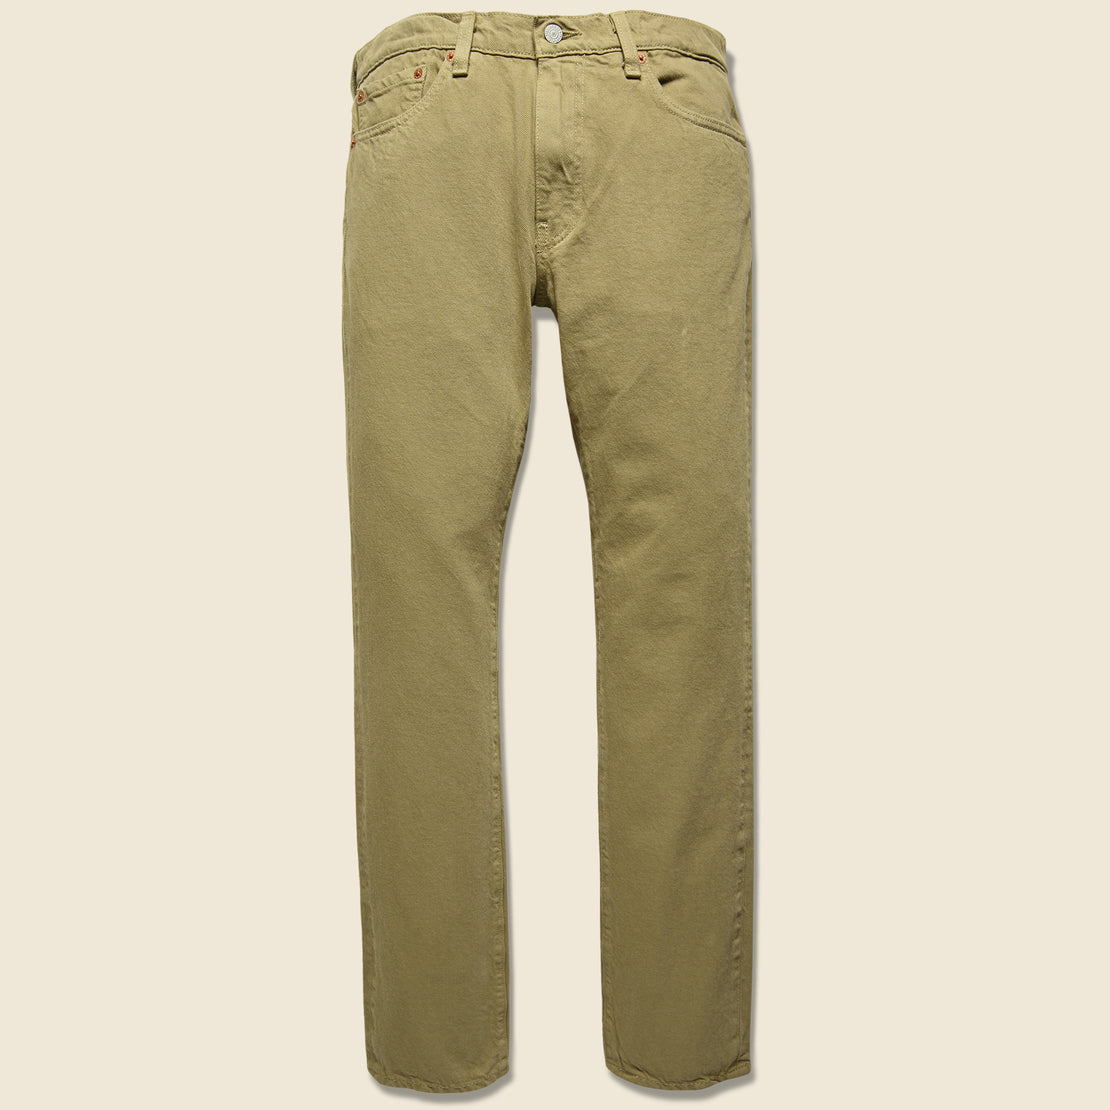 Levis Premium 511 Color Jean - Harvest Gold